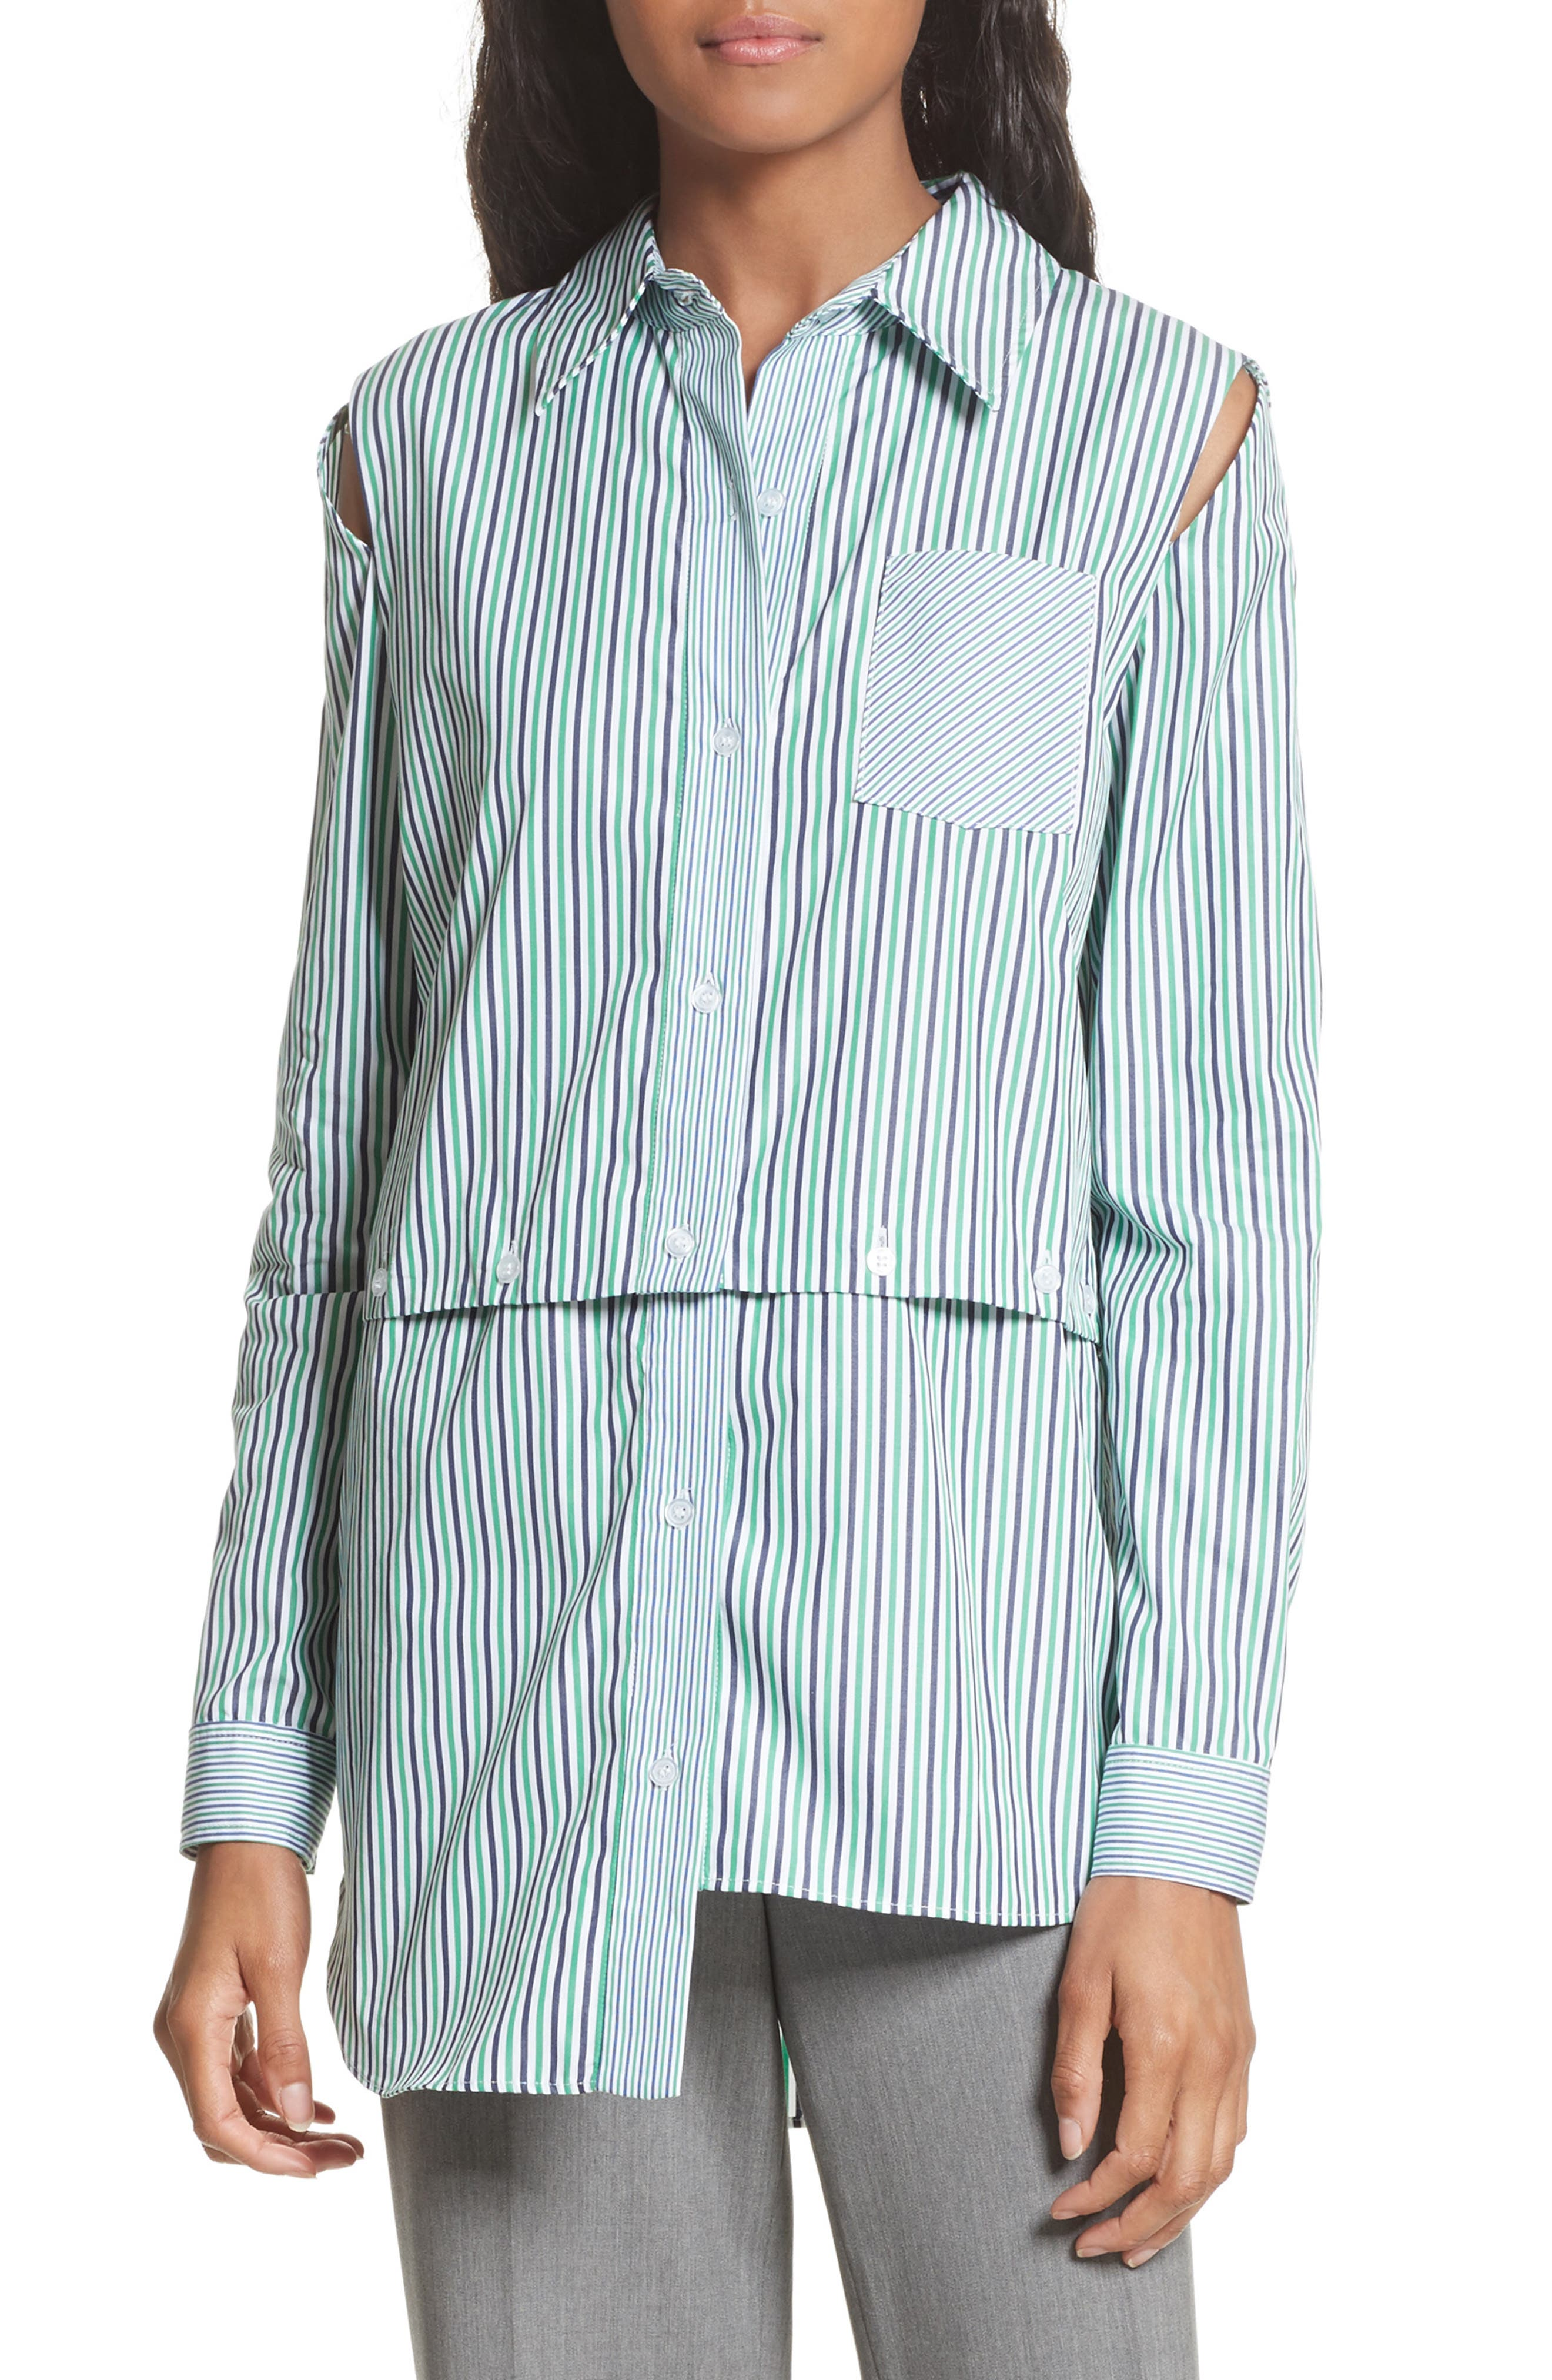 Alternate Image 1 Selected - Milly Fractured Stripe Shirt